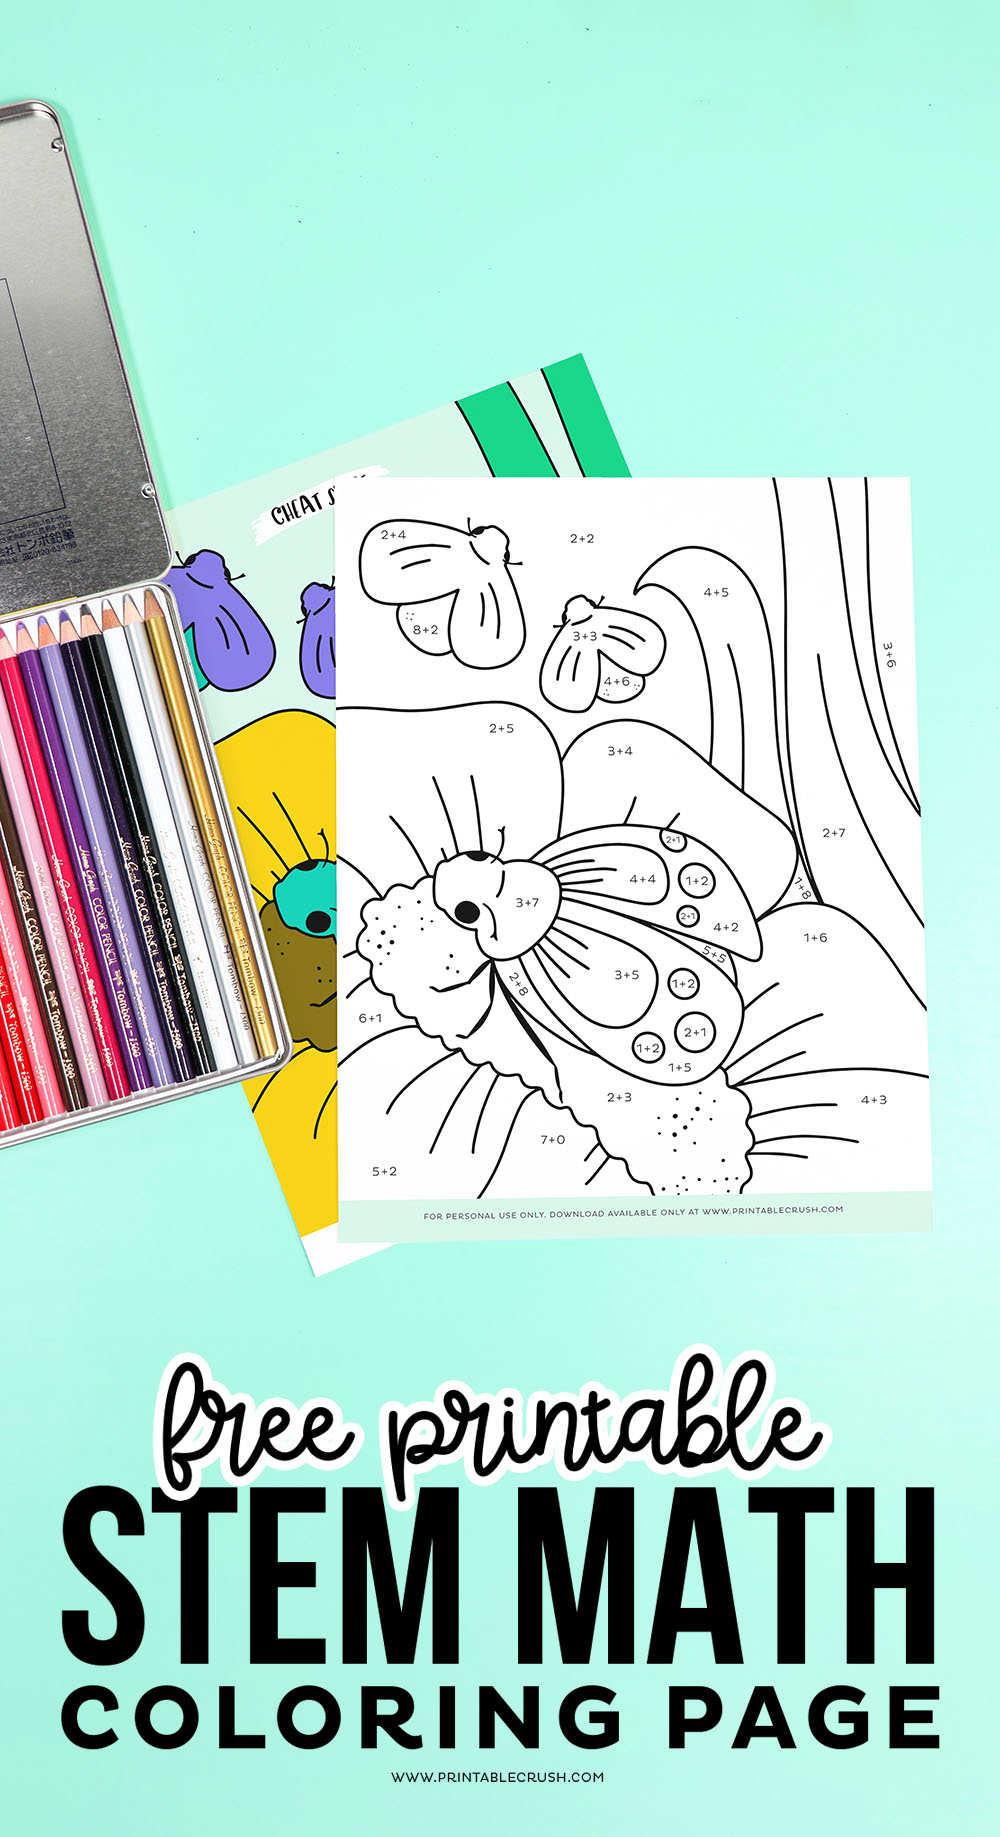 STEM Math Coloring Worksheet - Free Printable